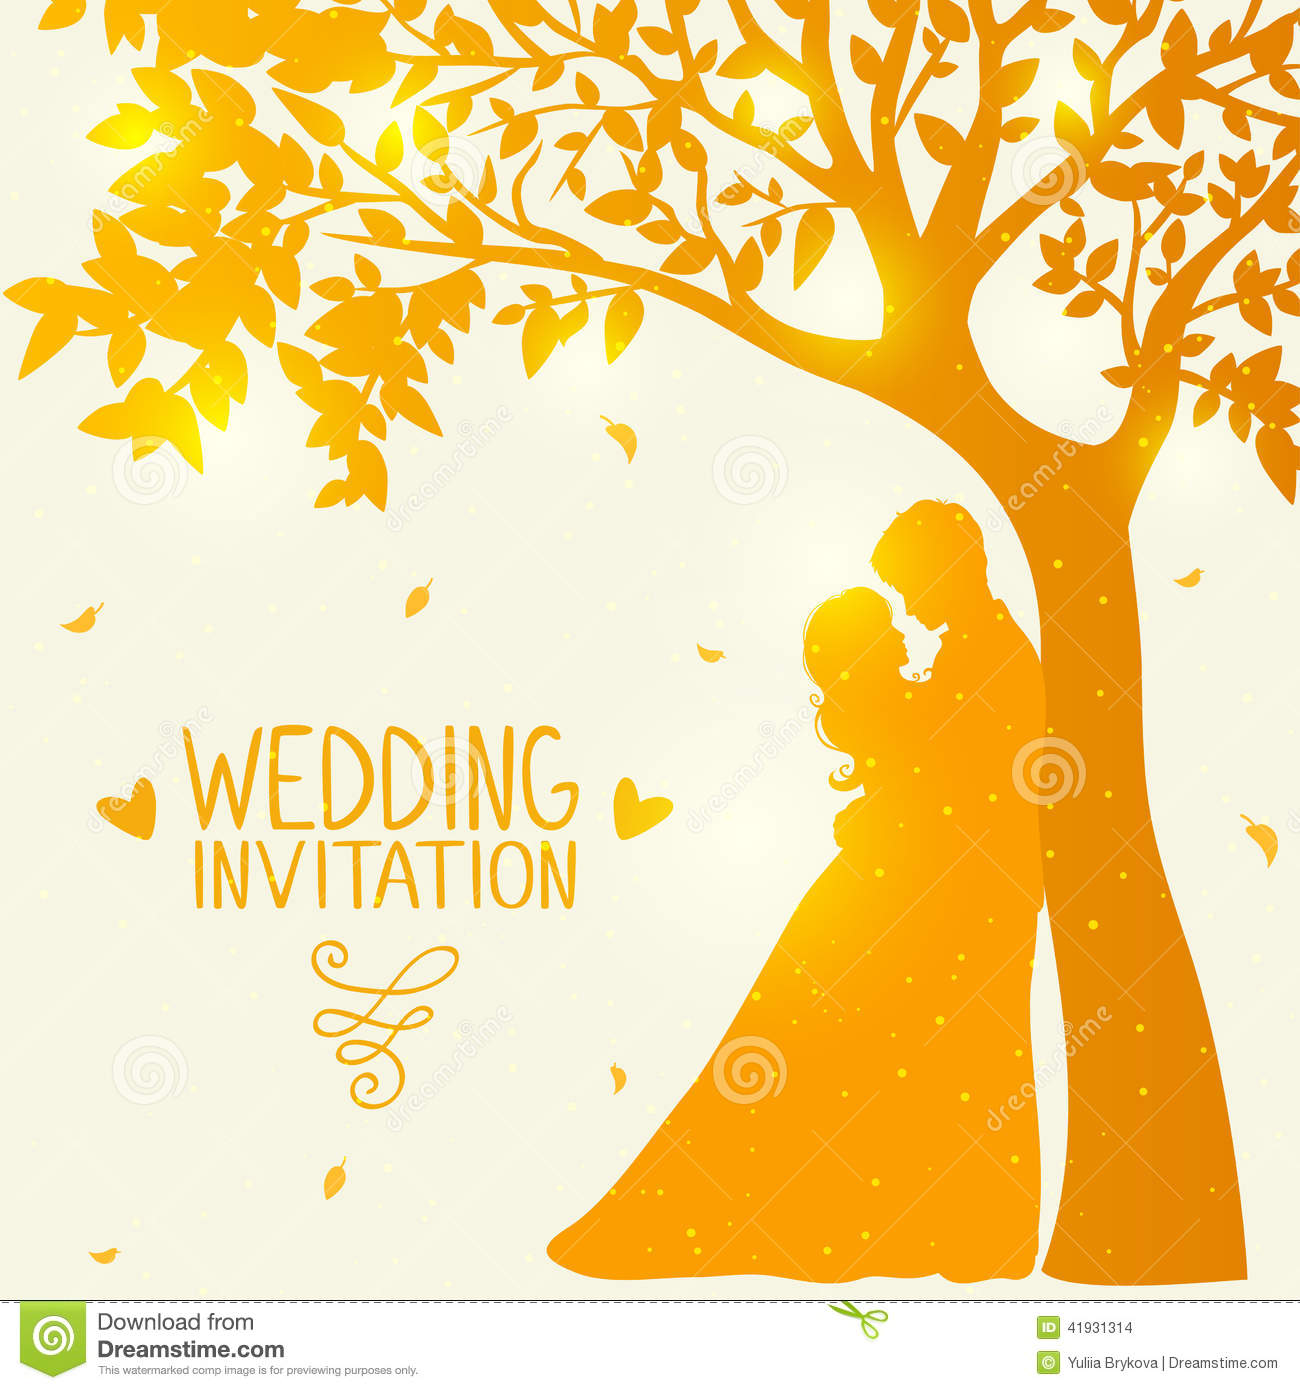 Marriage Invitation Card Templates as perfect invitation layout